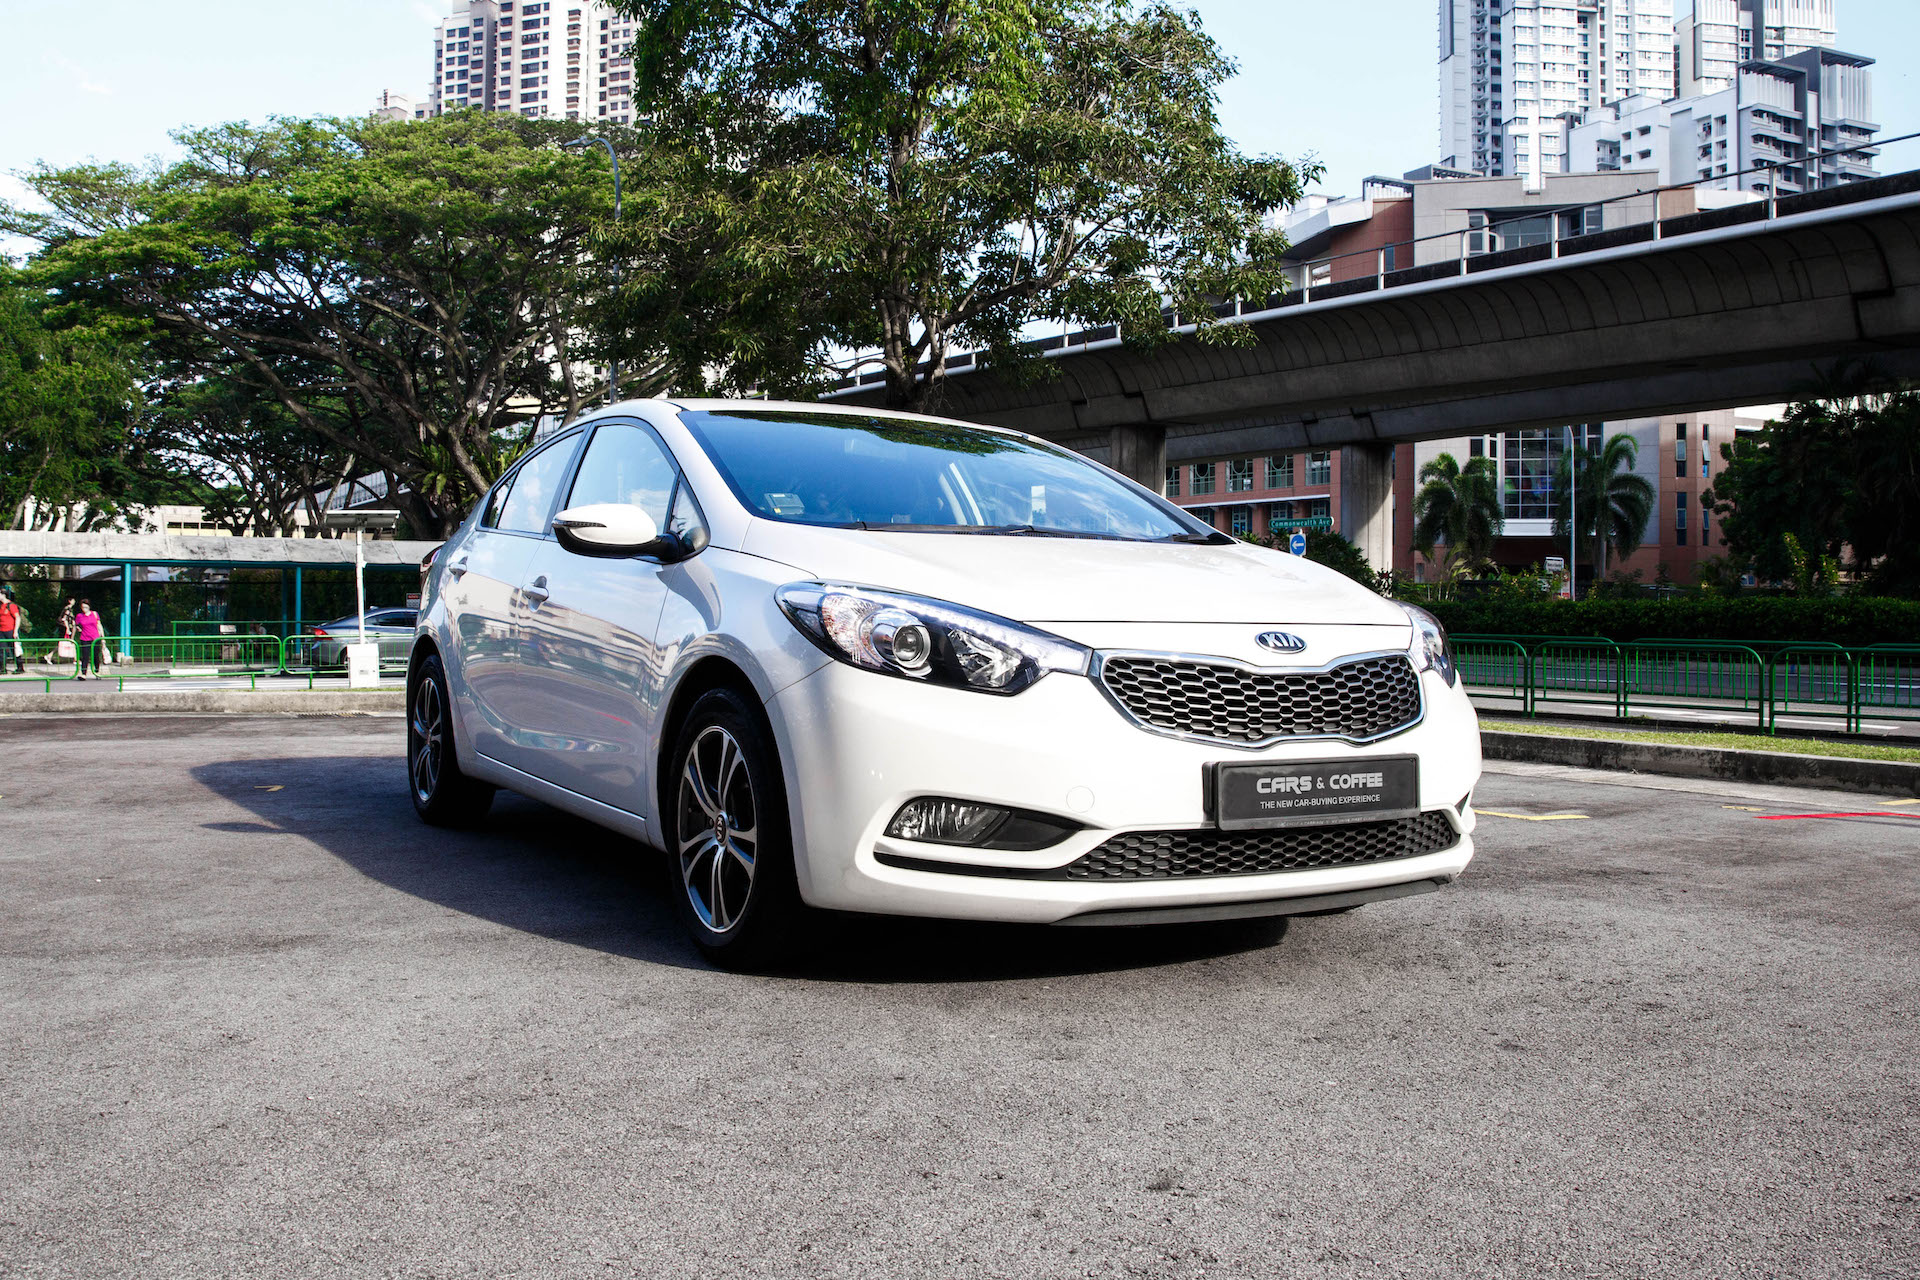 Certified Pre-Owned Kia Cerato K3 1.6A SX Sunroof   Cars and Coffee Singapore